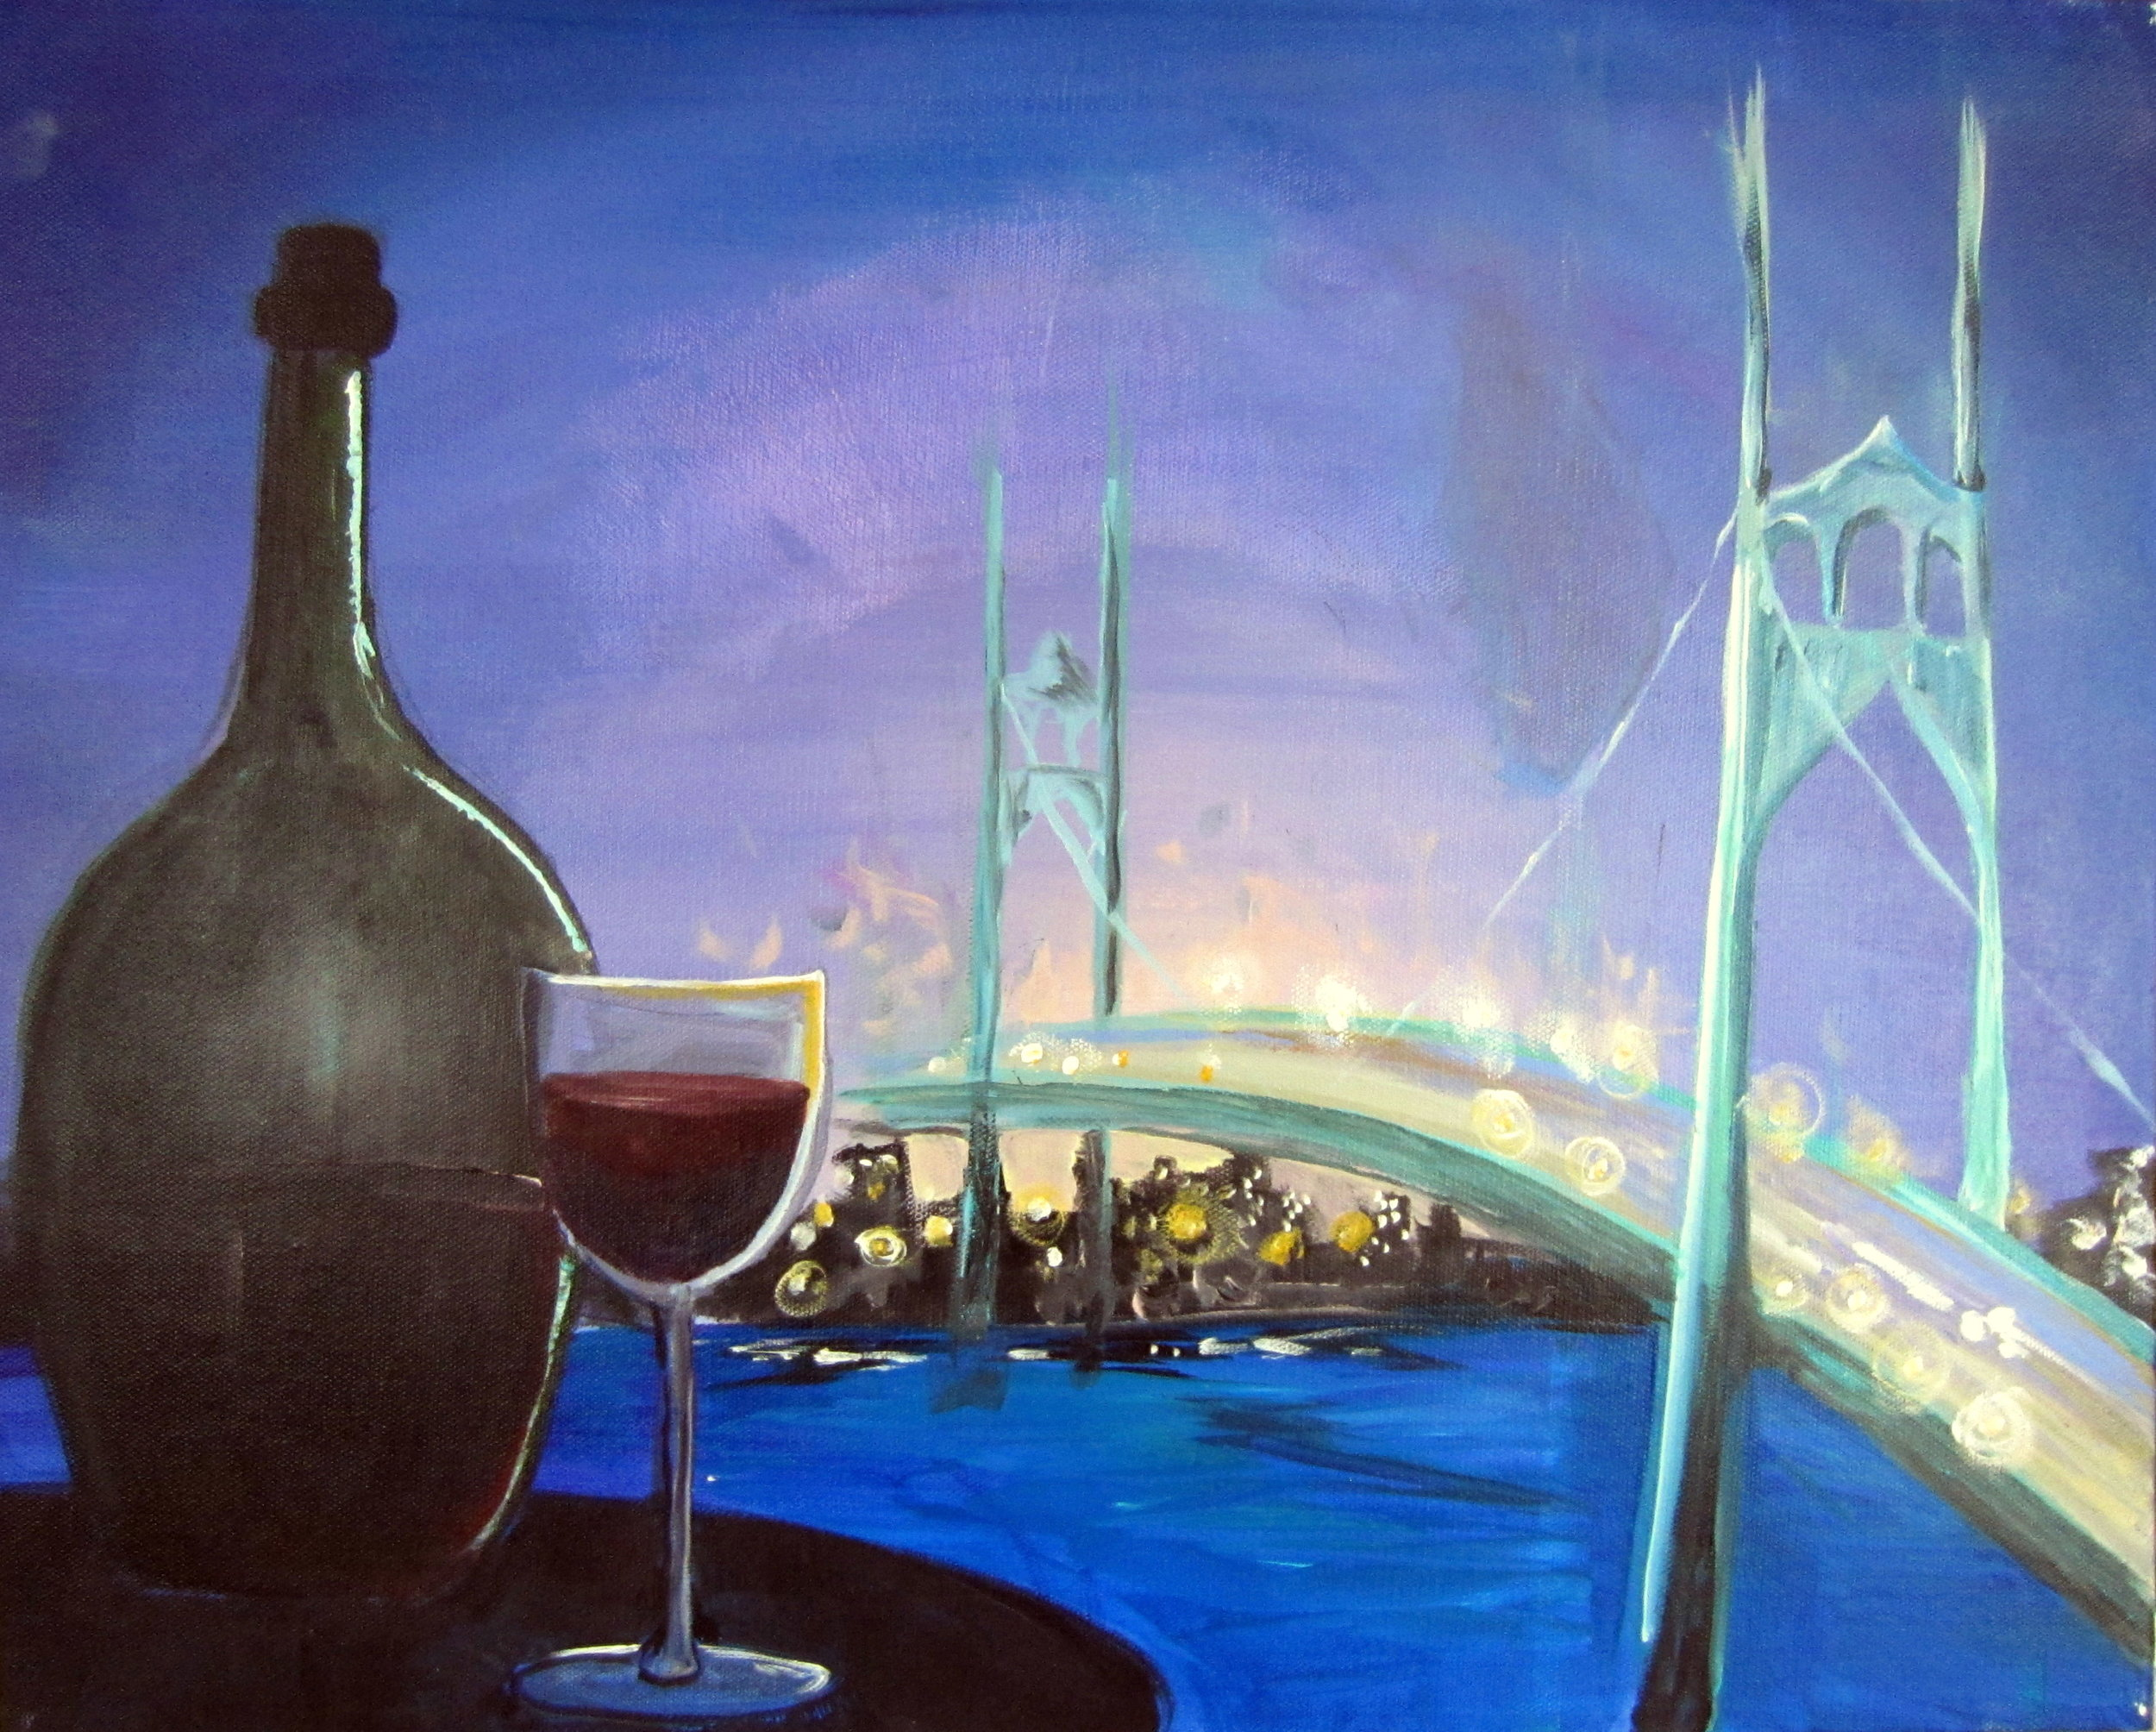 For more information on how to host your own private event, please email angie@popandpaint.com or call (503) 893-8767.